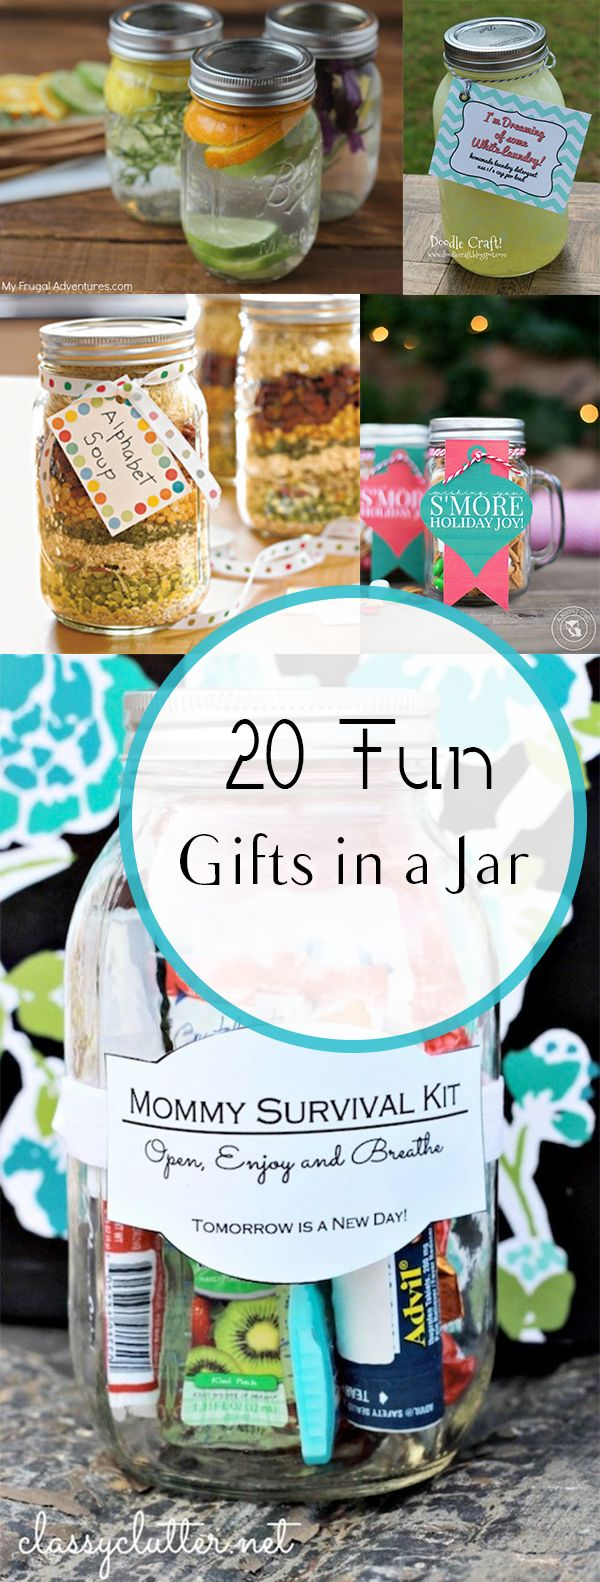 ***20 Fun Gifts in a Jar~~COOKIE      SOUP     BATH SCRUBS    CANDLES    LOTION    MOMMY KIT    MEMORIES      QUOTES    BEAUTY KIT